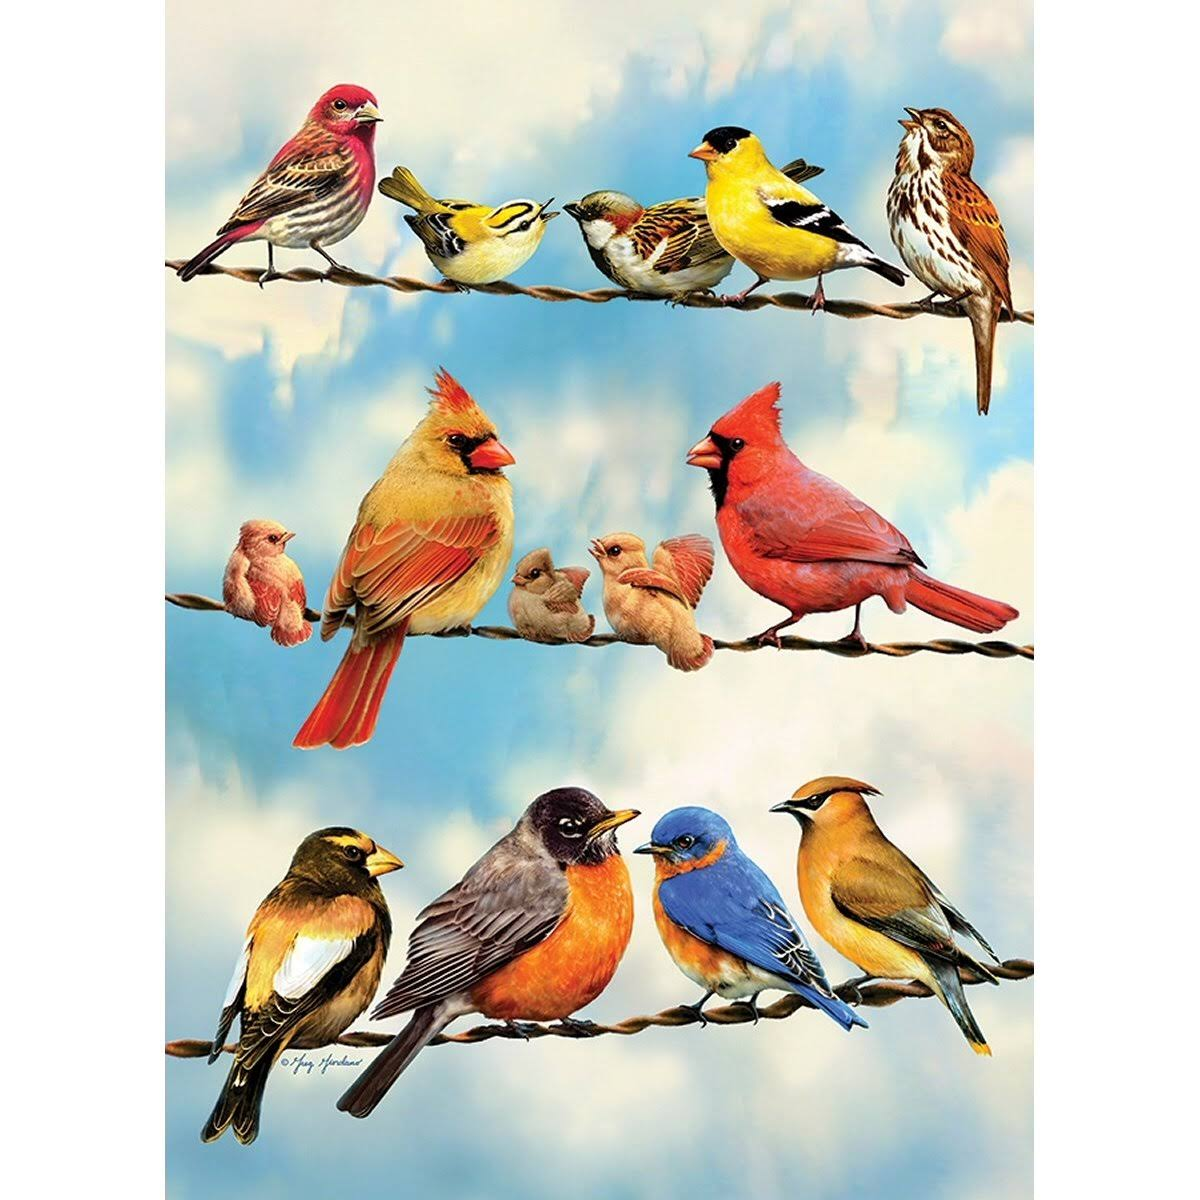 Outset Media Games OM58888 Blue Sky Birds Puzzle Tray, 35 Piece